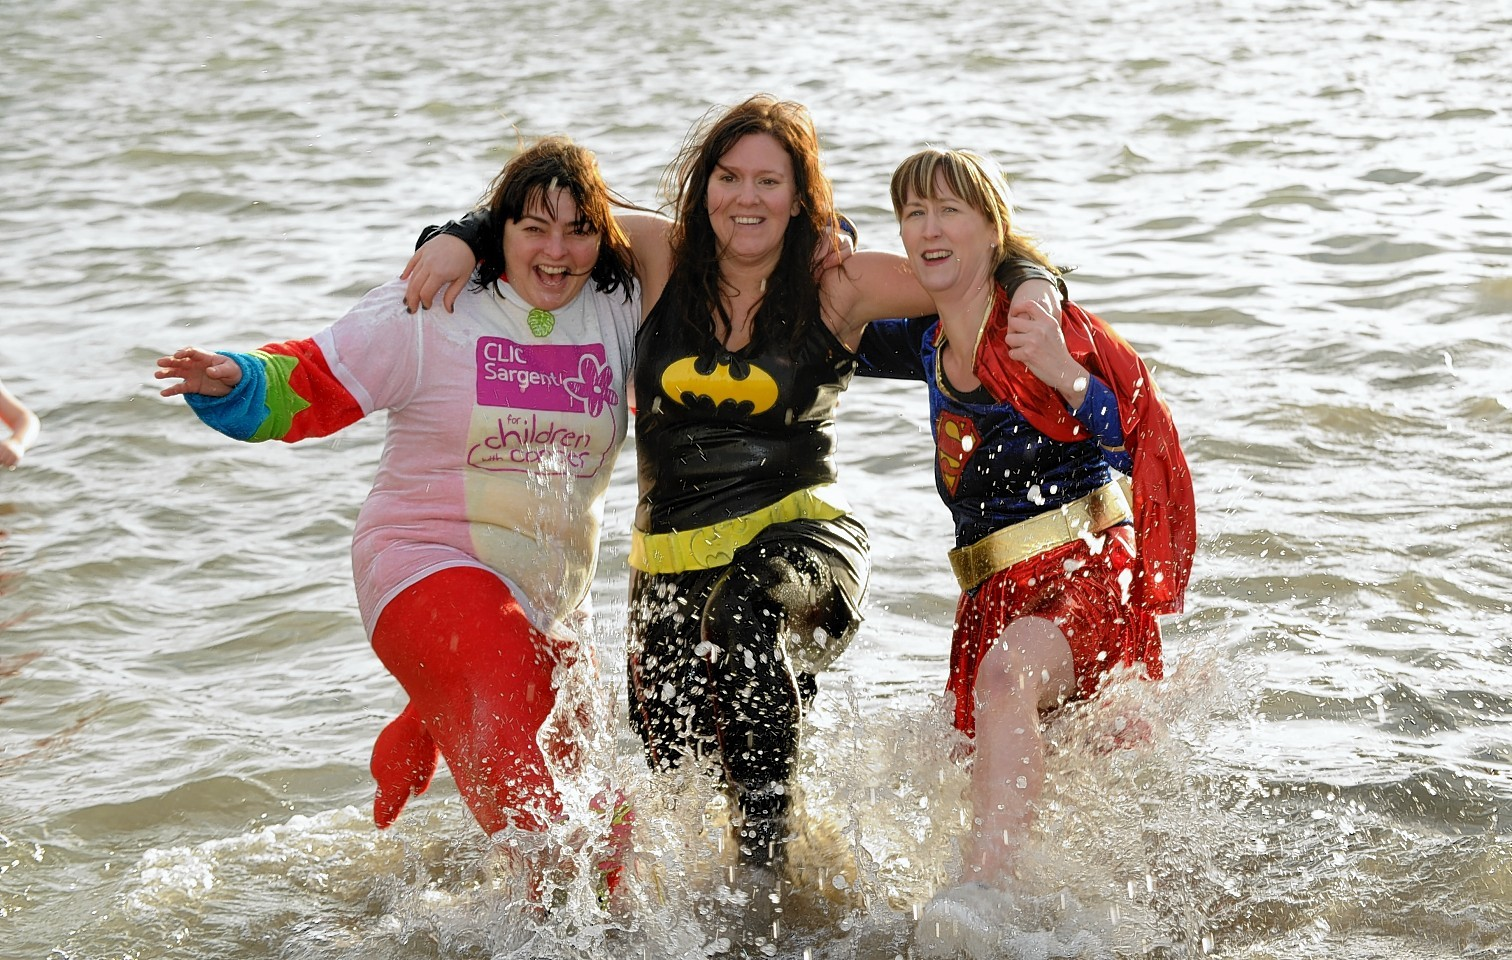 Participants from Clic Sargent's 2014 New Years Day Dip in Stonehaven